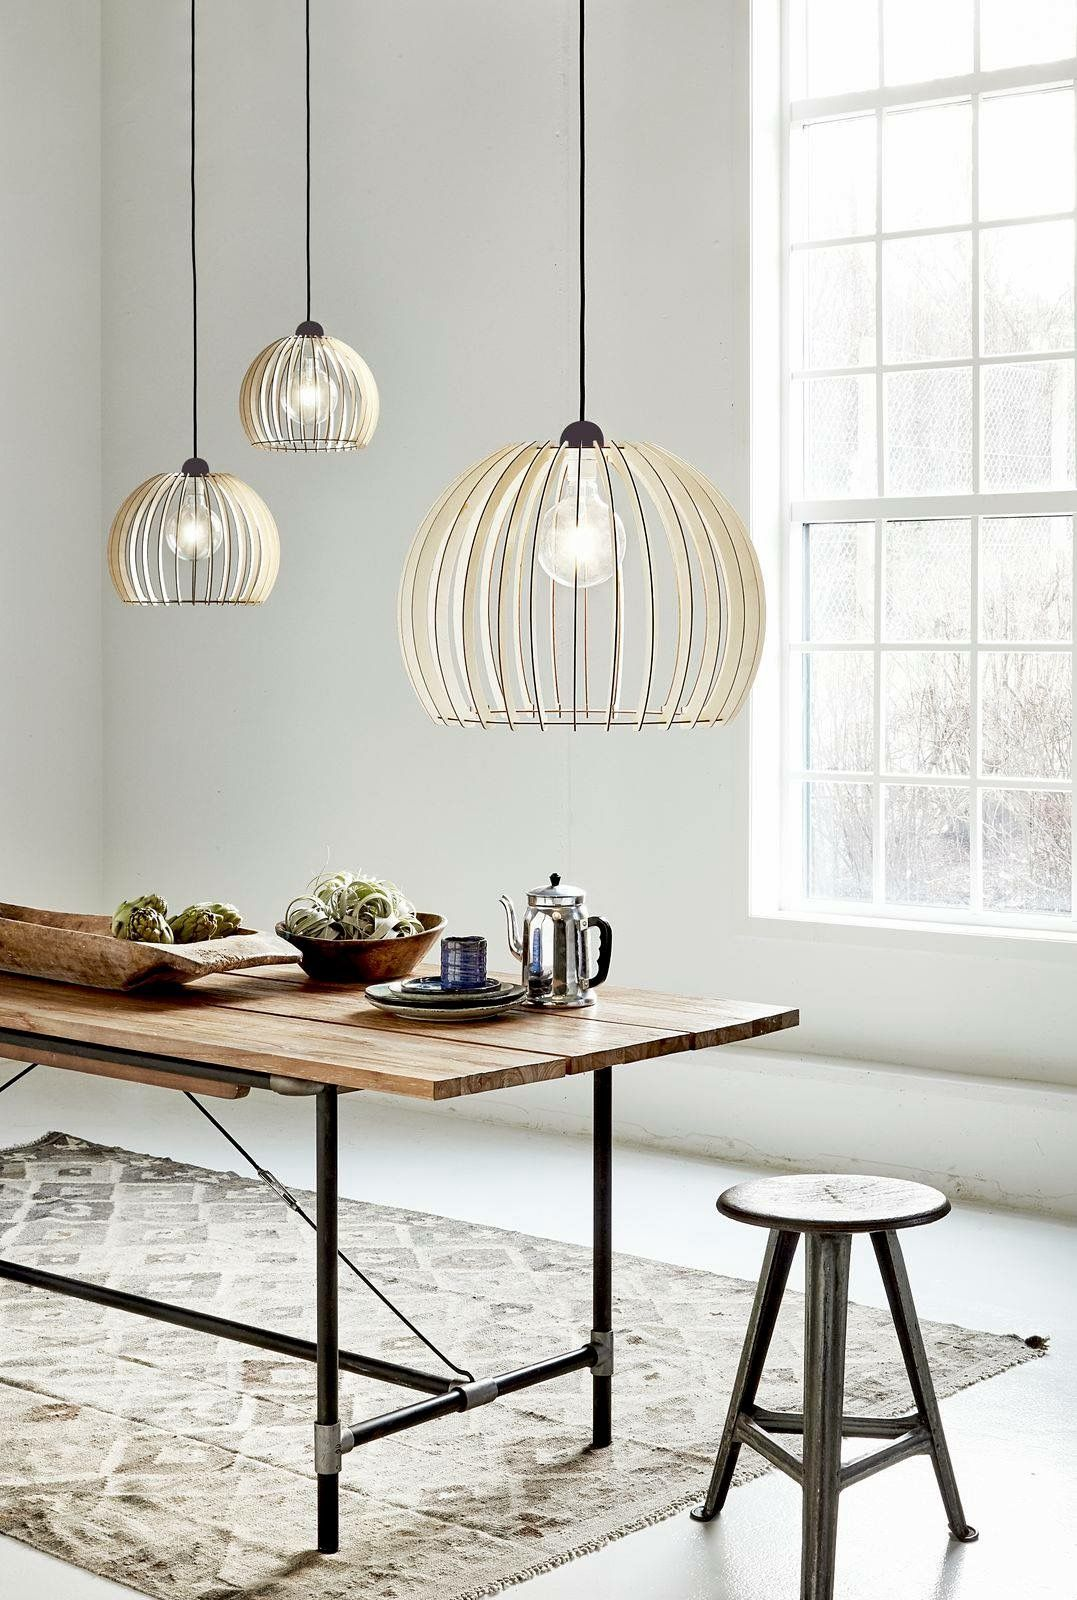 Add A Finishing Touch Or Transform A Room With The Latest Trending Pendant  Lamps